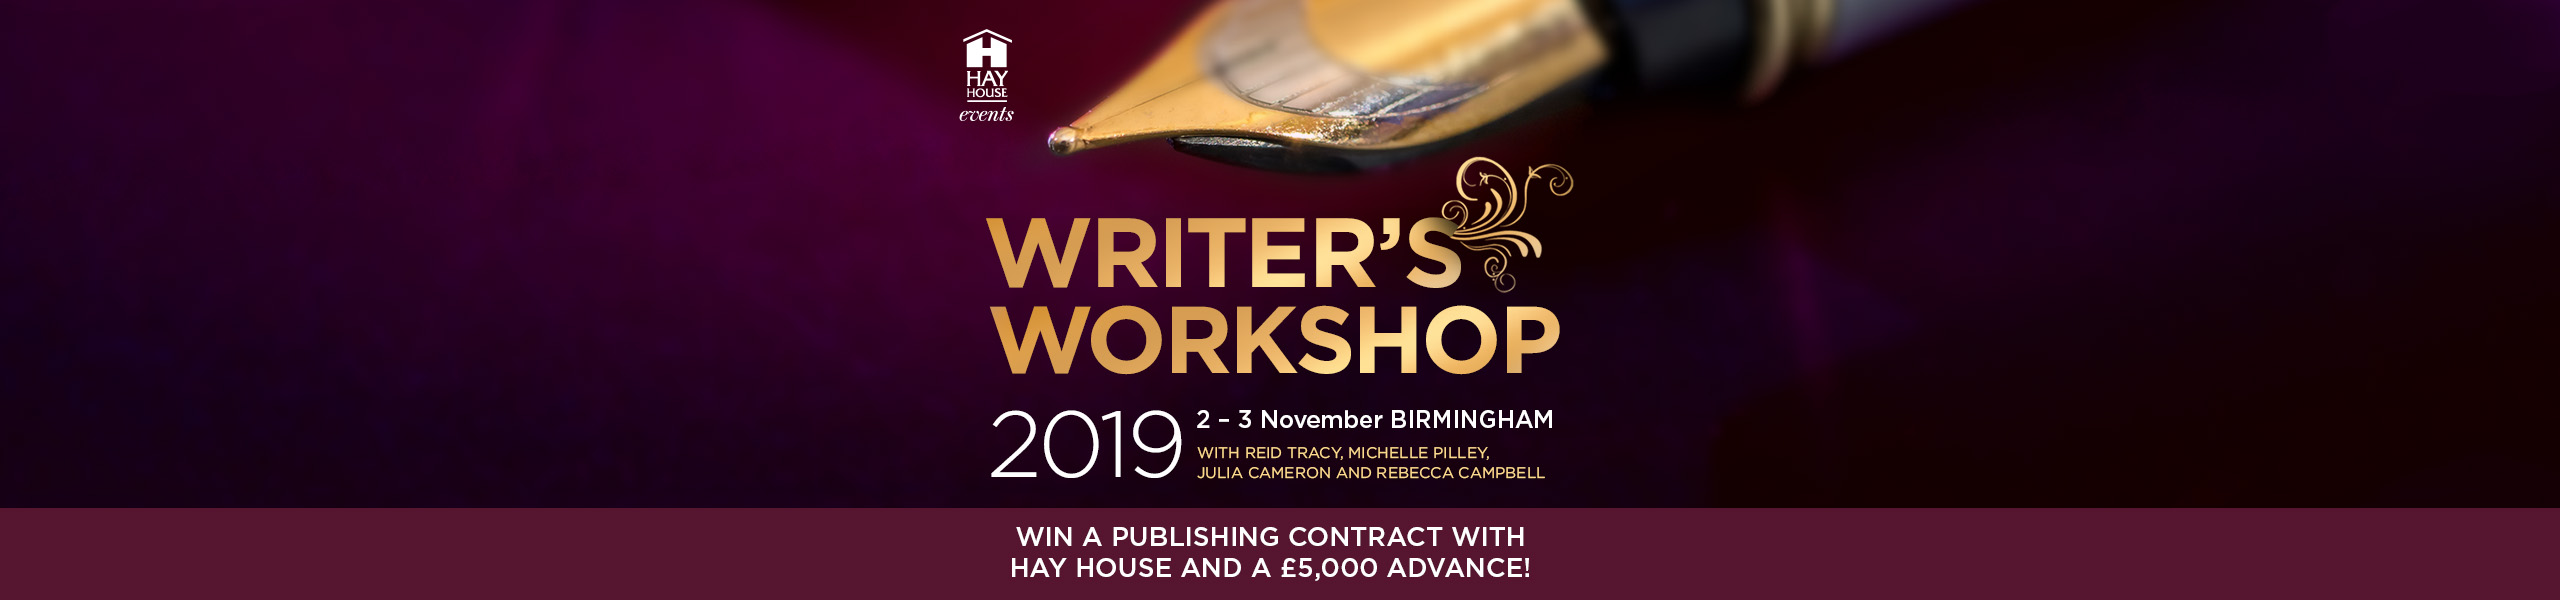 Writer's Workshop 2019 Birmingham